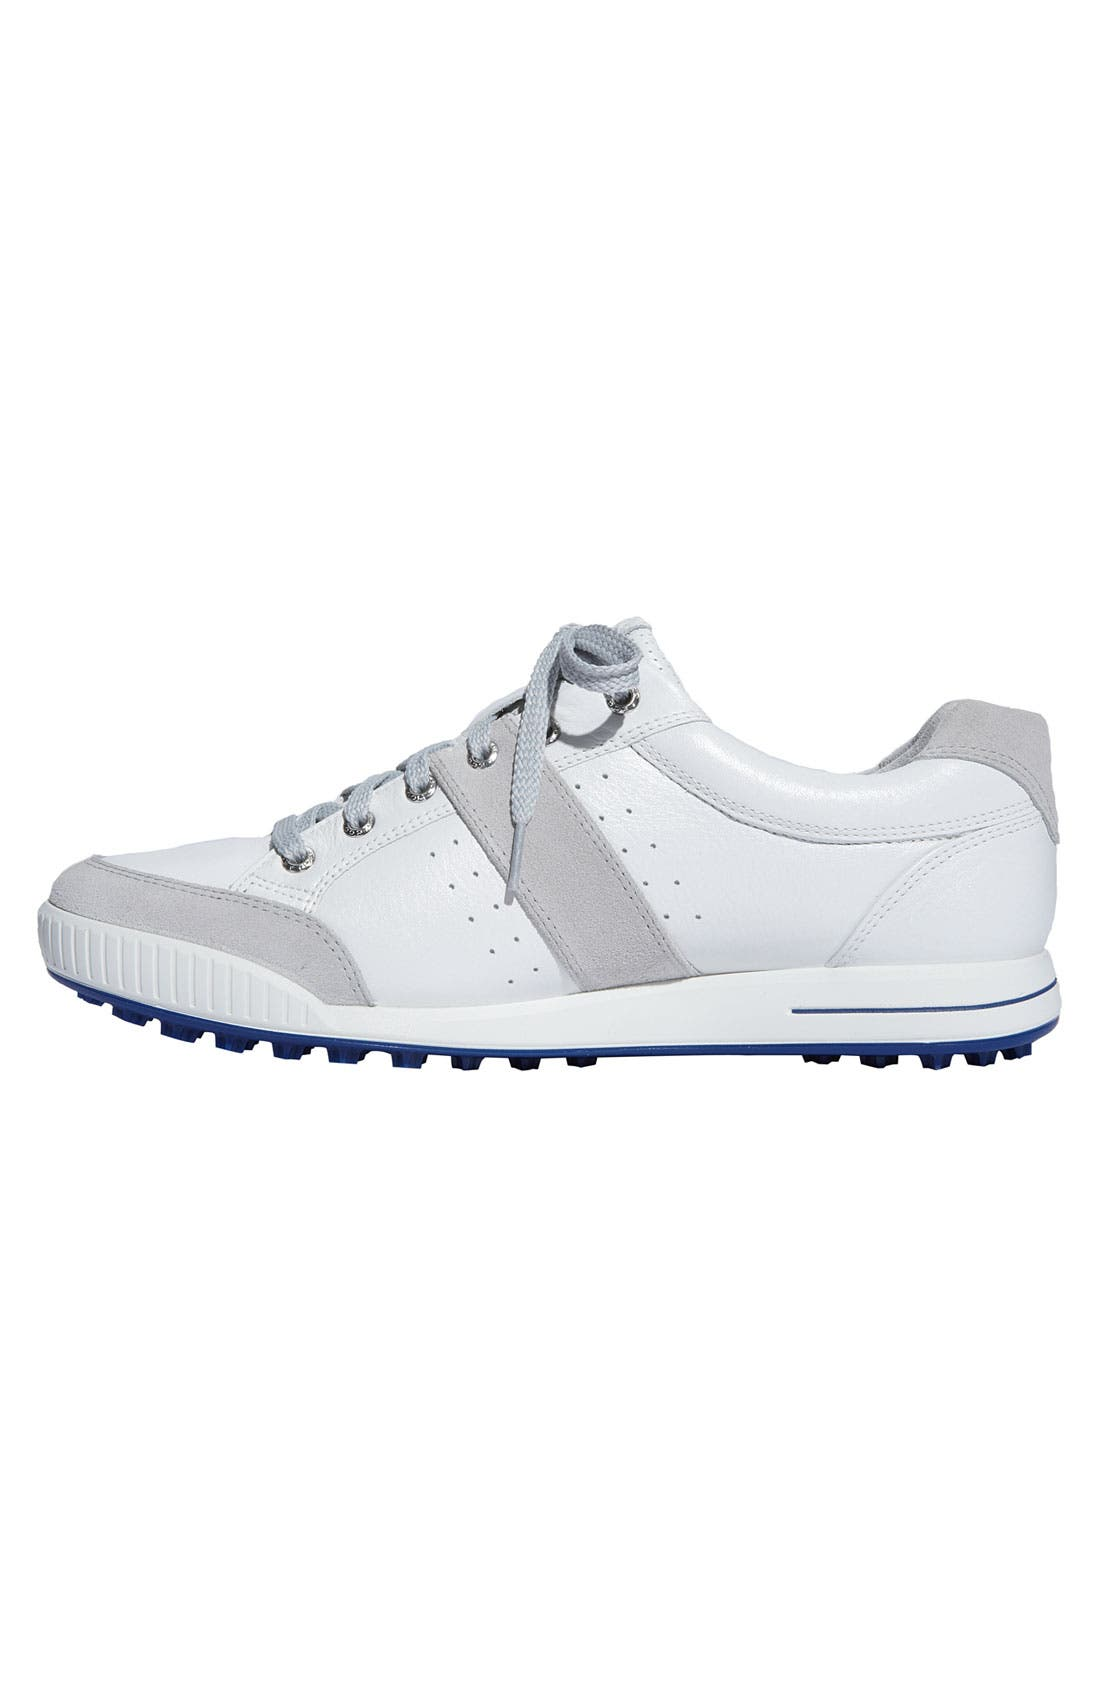 Alternate Image 2  - ECCO 'Street Premiere' Golf Shoe (Men)